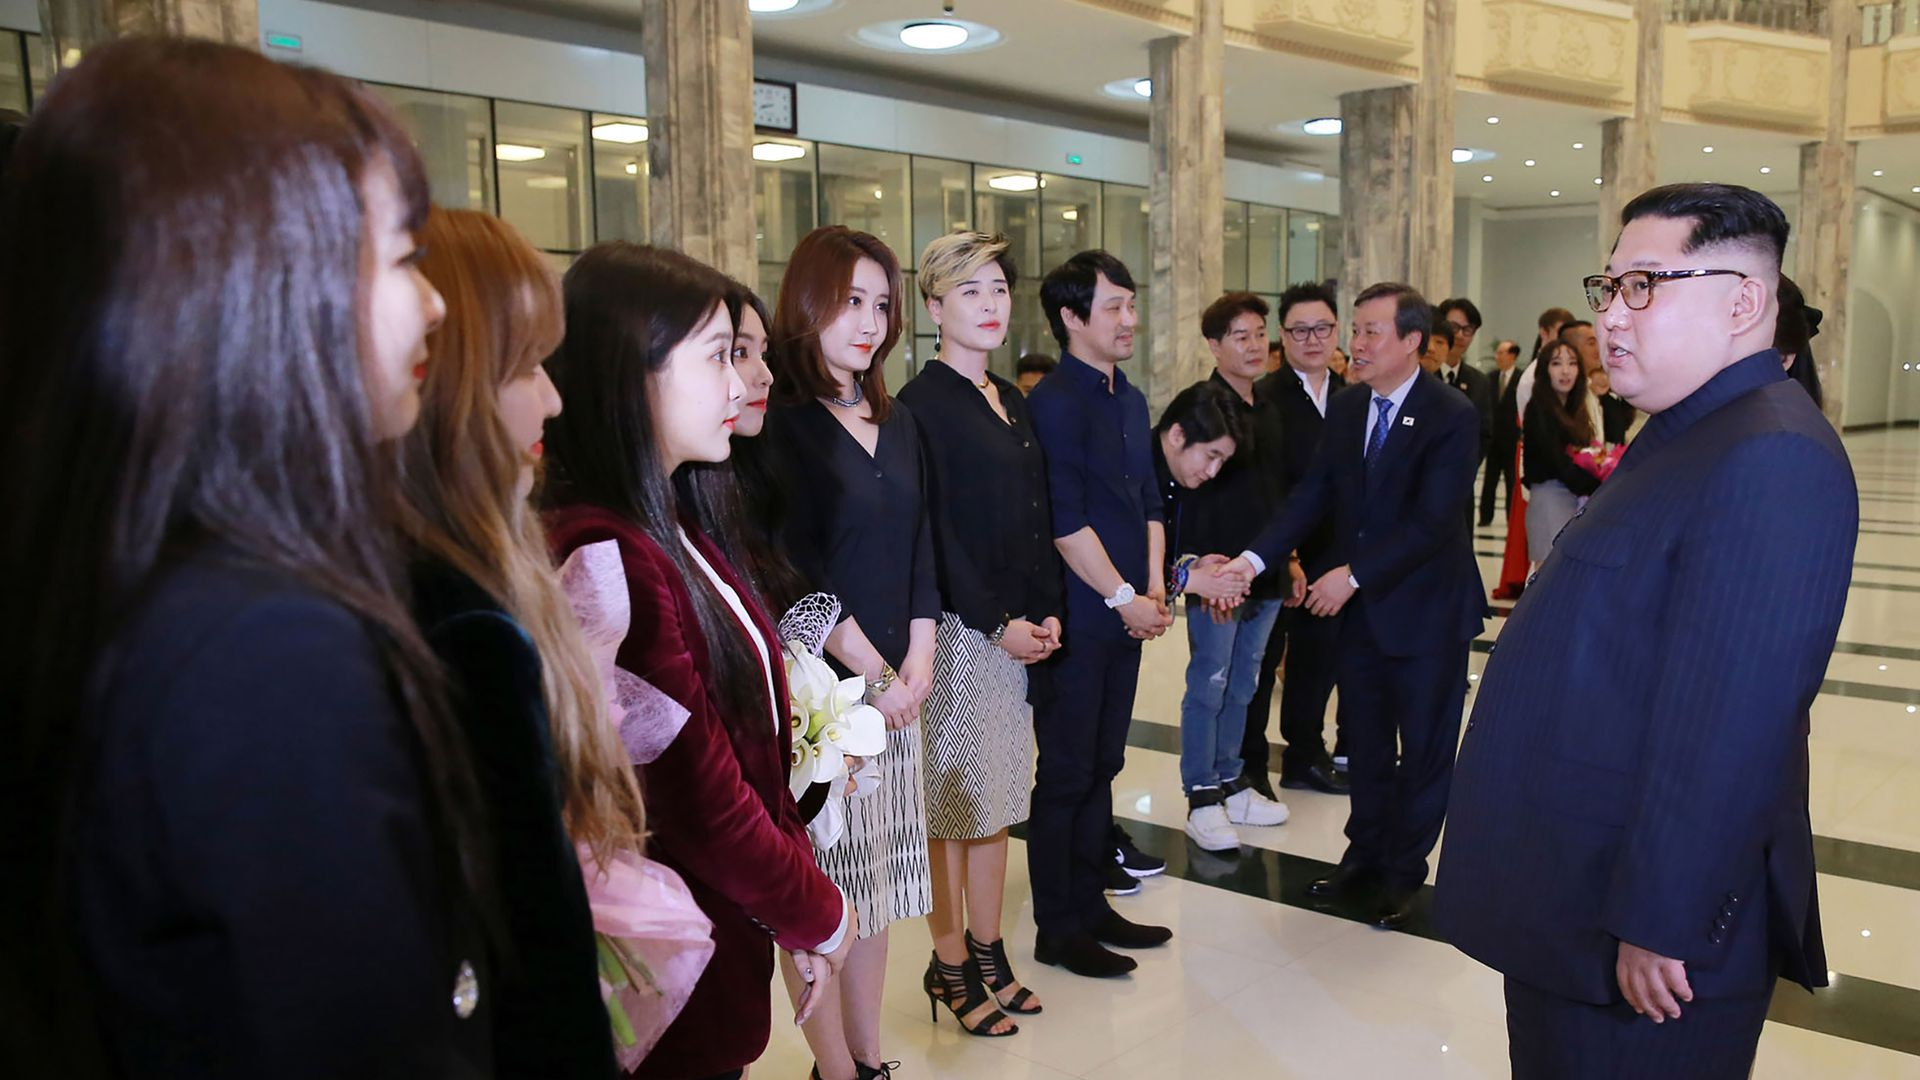 Kim Jong-un (right) speaks with South Korean performers (left) in Pyongyang.